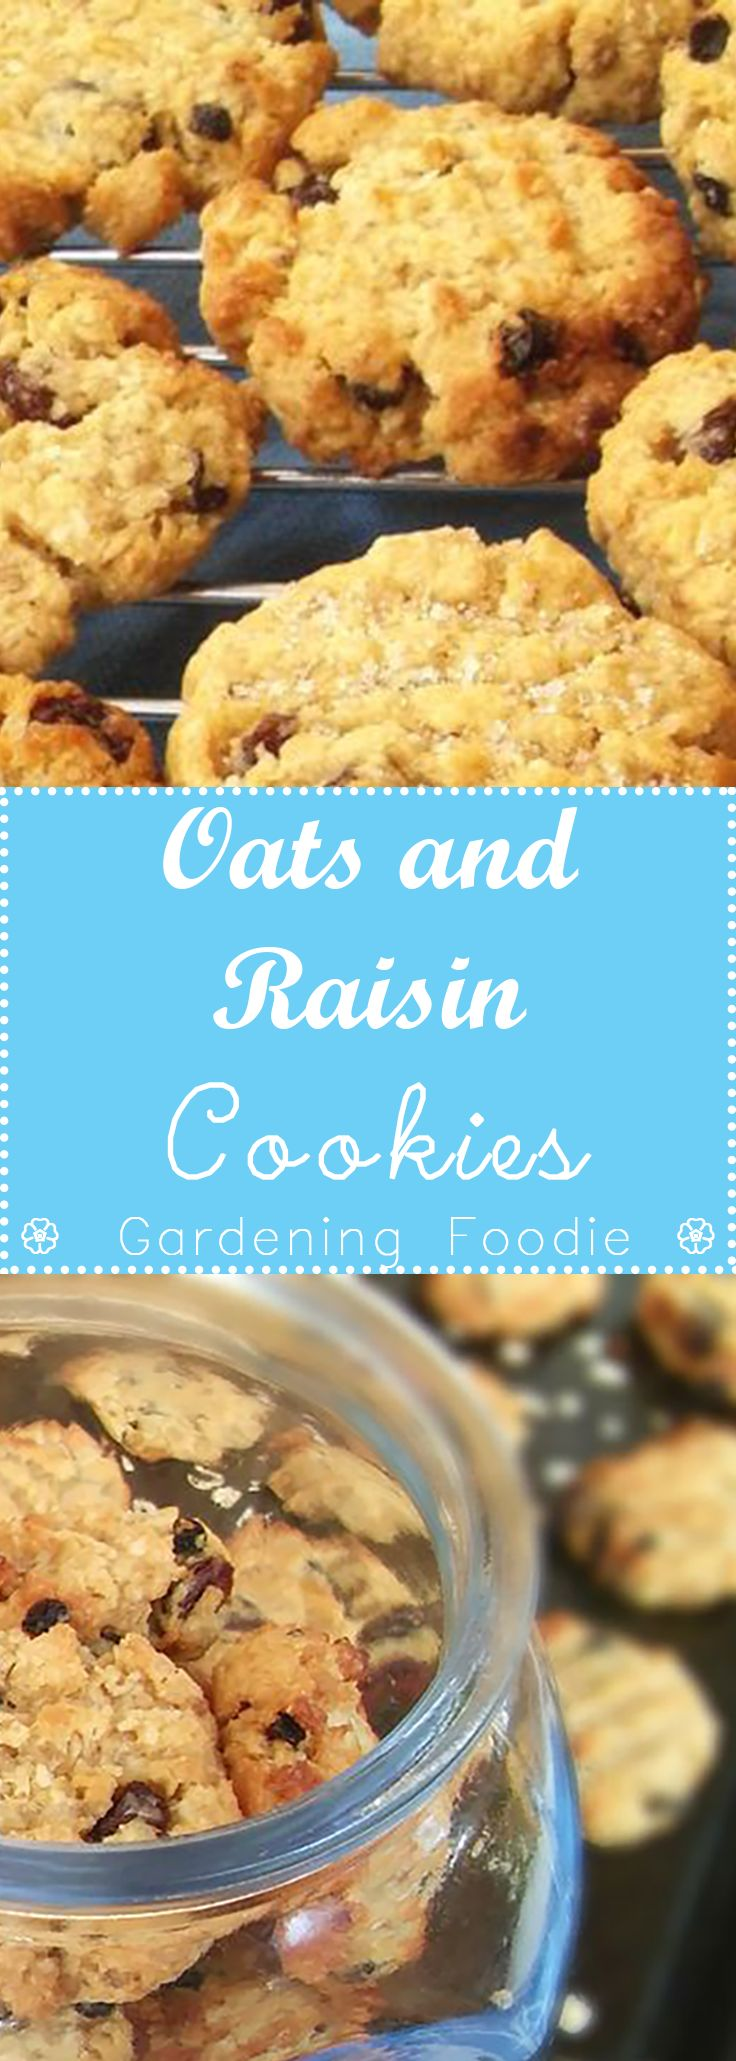 Oats and Raisin cookies ⋆ Gardening Foodie